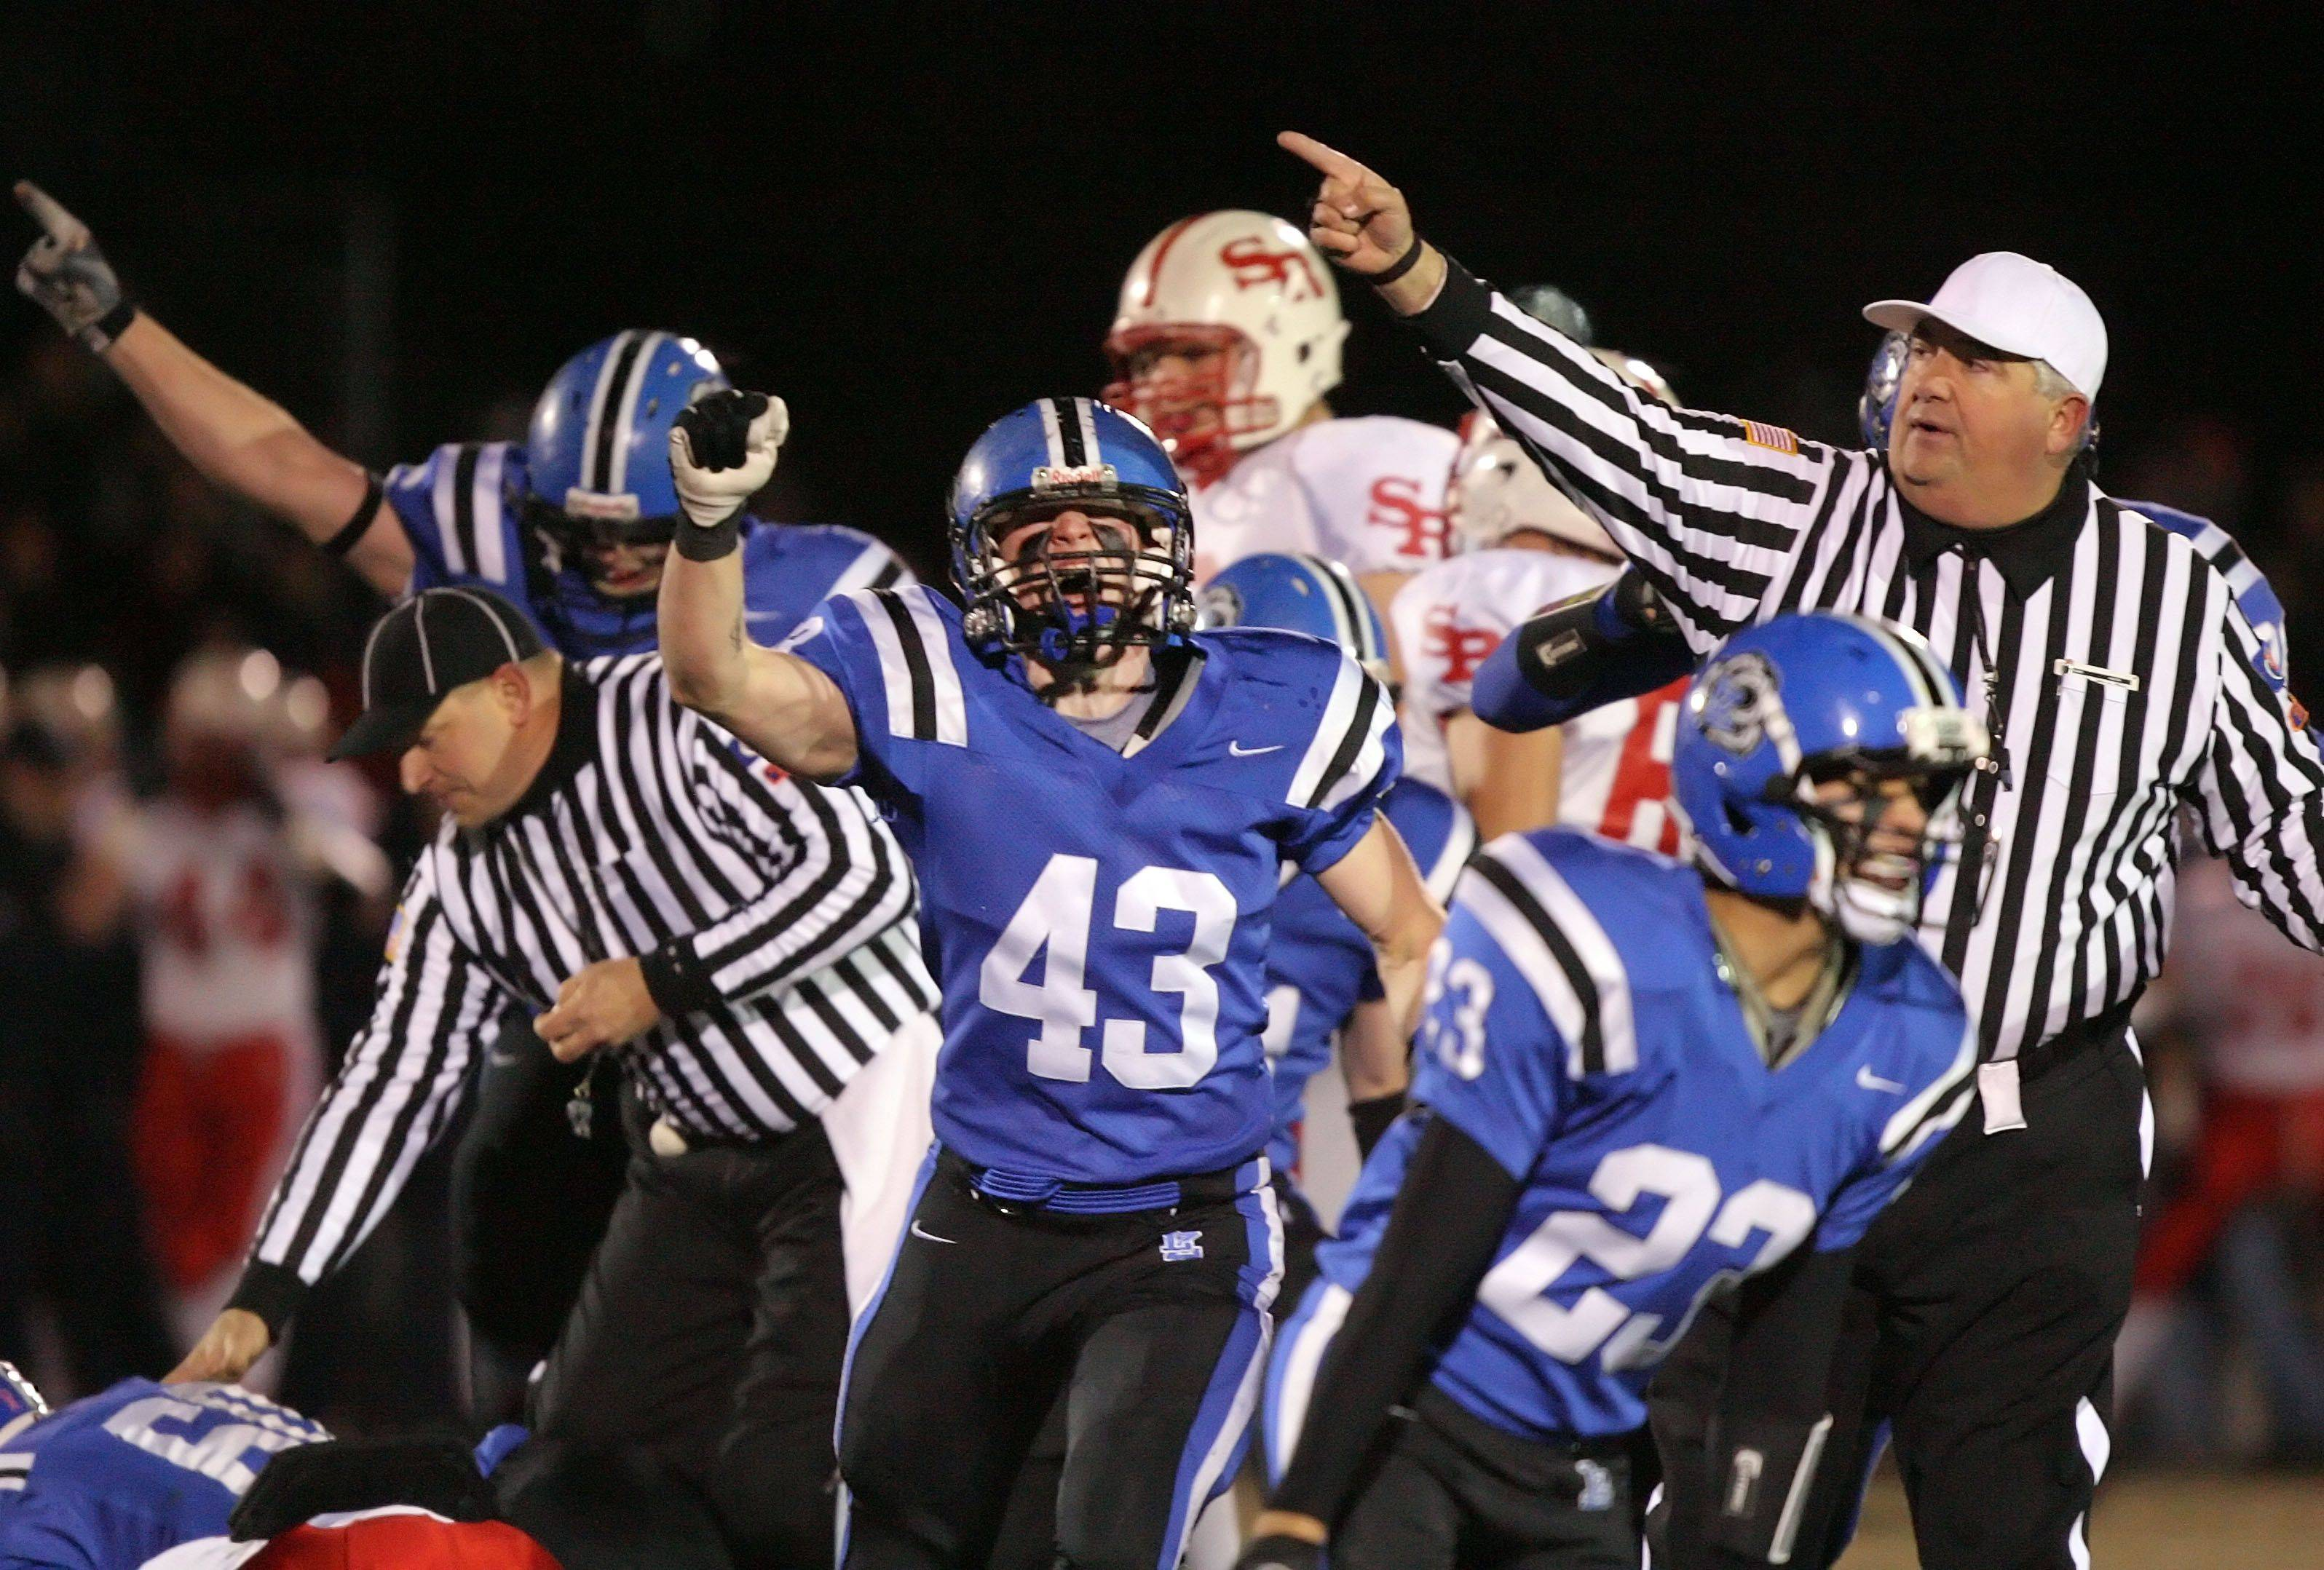 Lake Zurich's defense celebrates after recovering a St. Rita fumble during the IHSA Class 7A football semifinal game Saturday night in Lake Zurich.